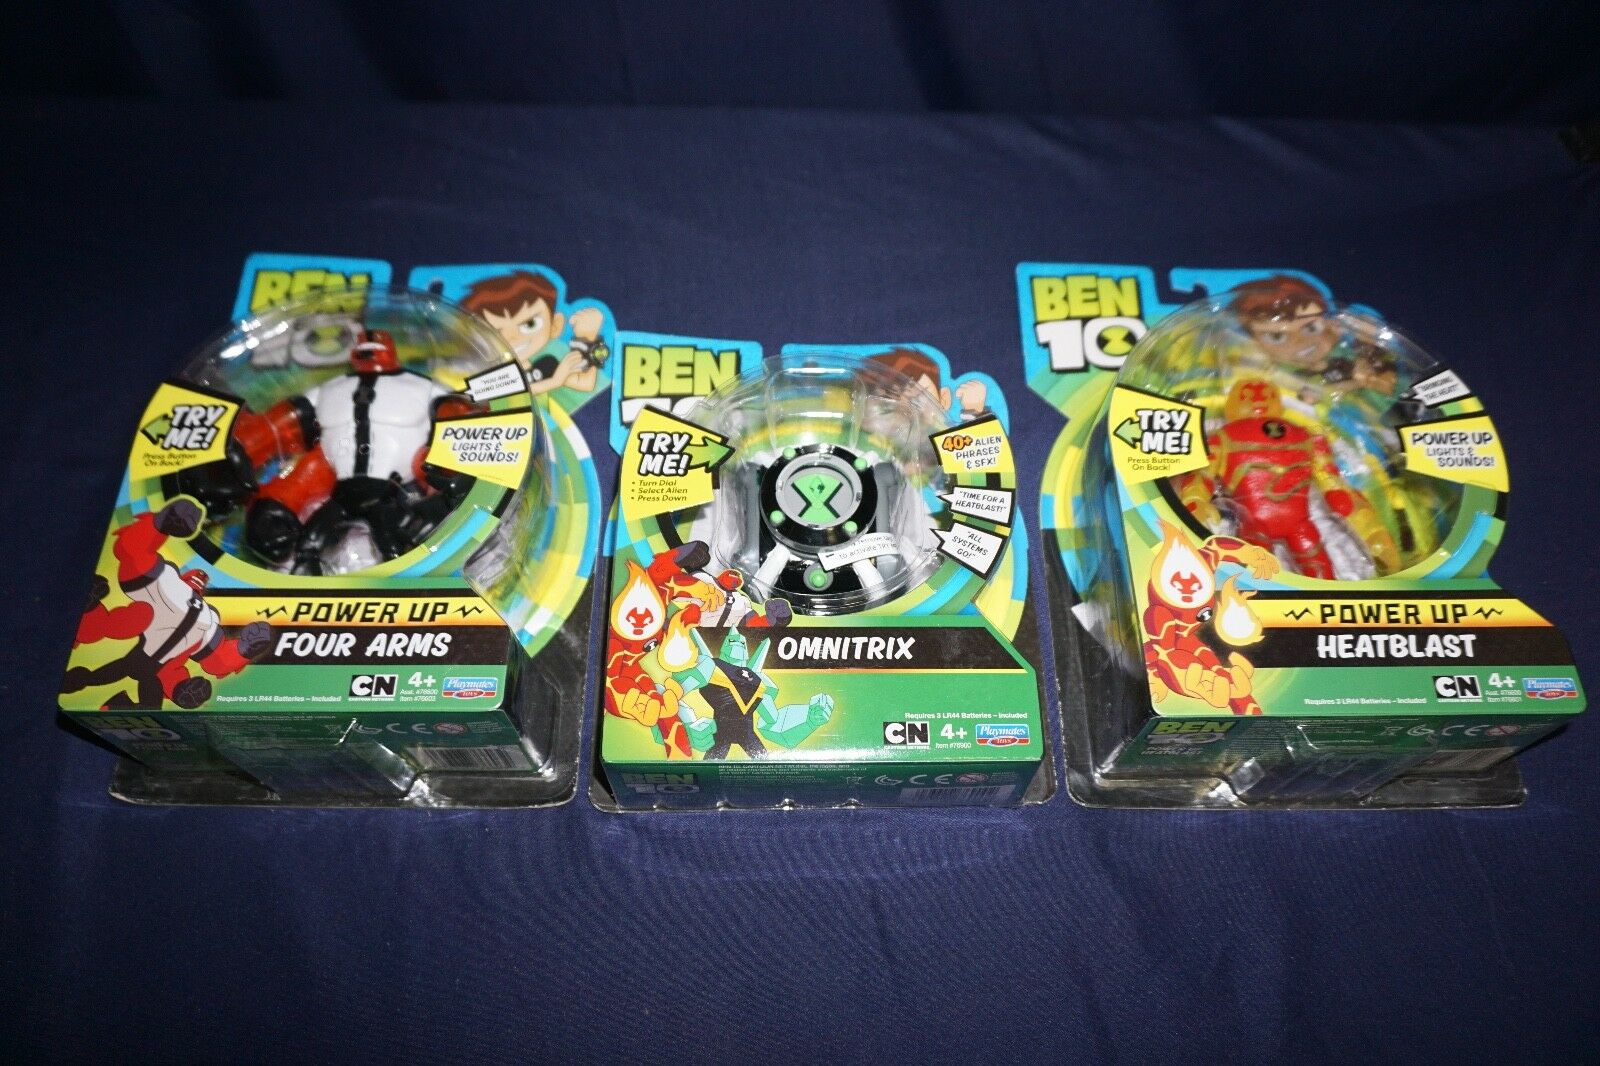 BEN 10 POWER UP FOUR ARMS HEATBLAST OMNITRIX PLAYMATES 2017 ACTON FIGURES